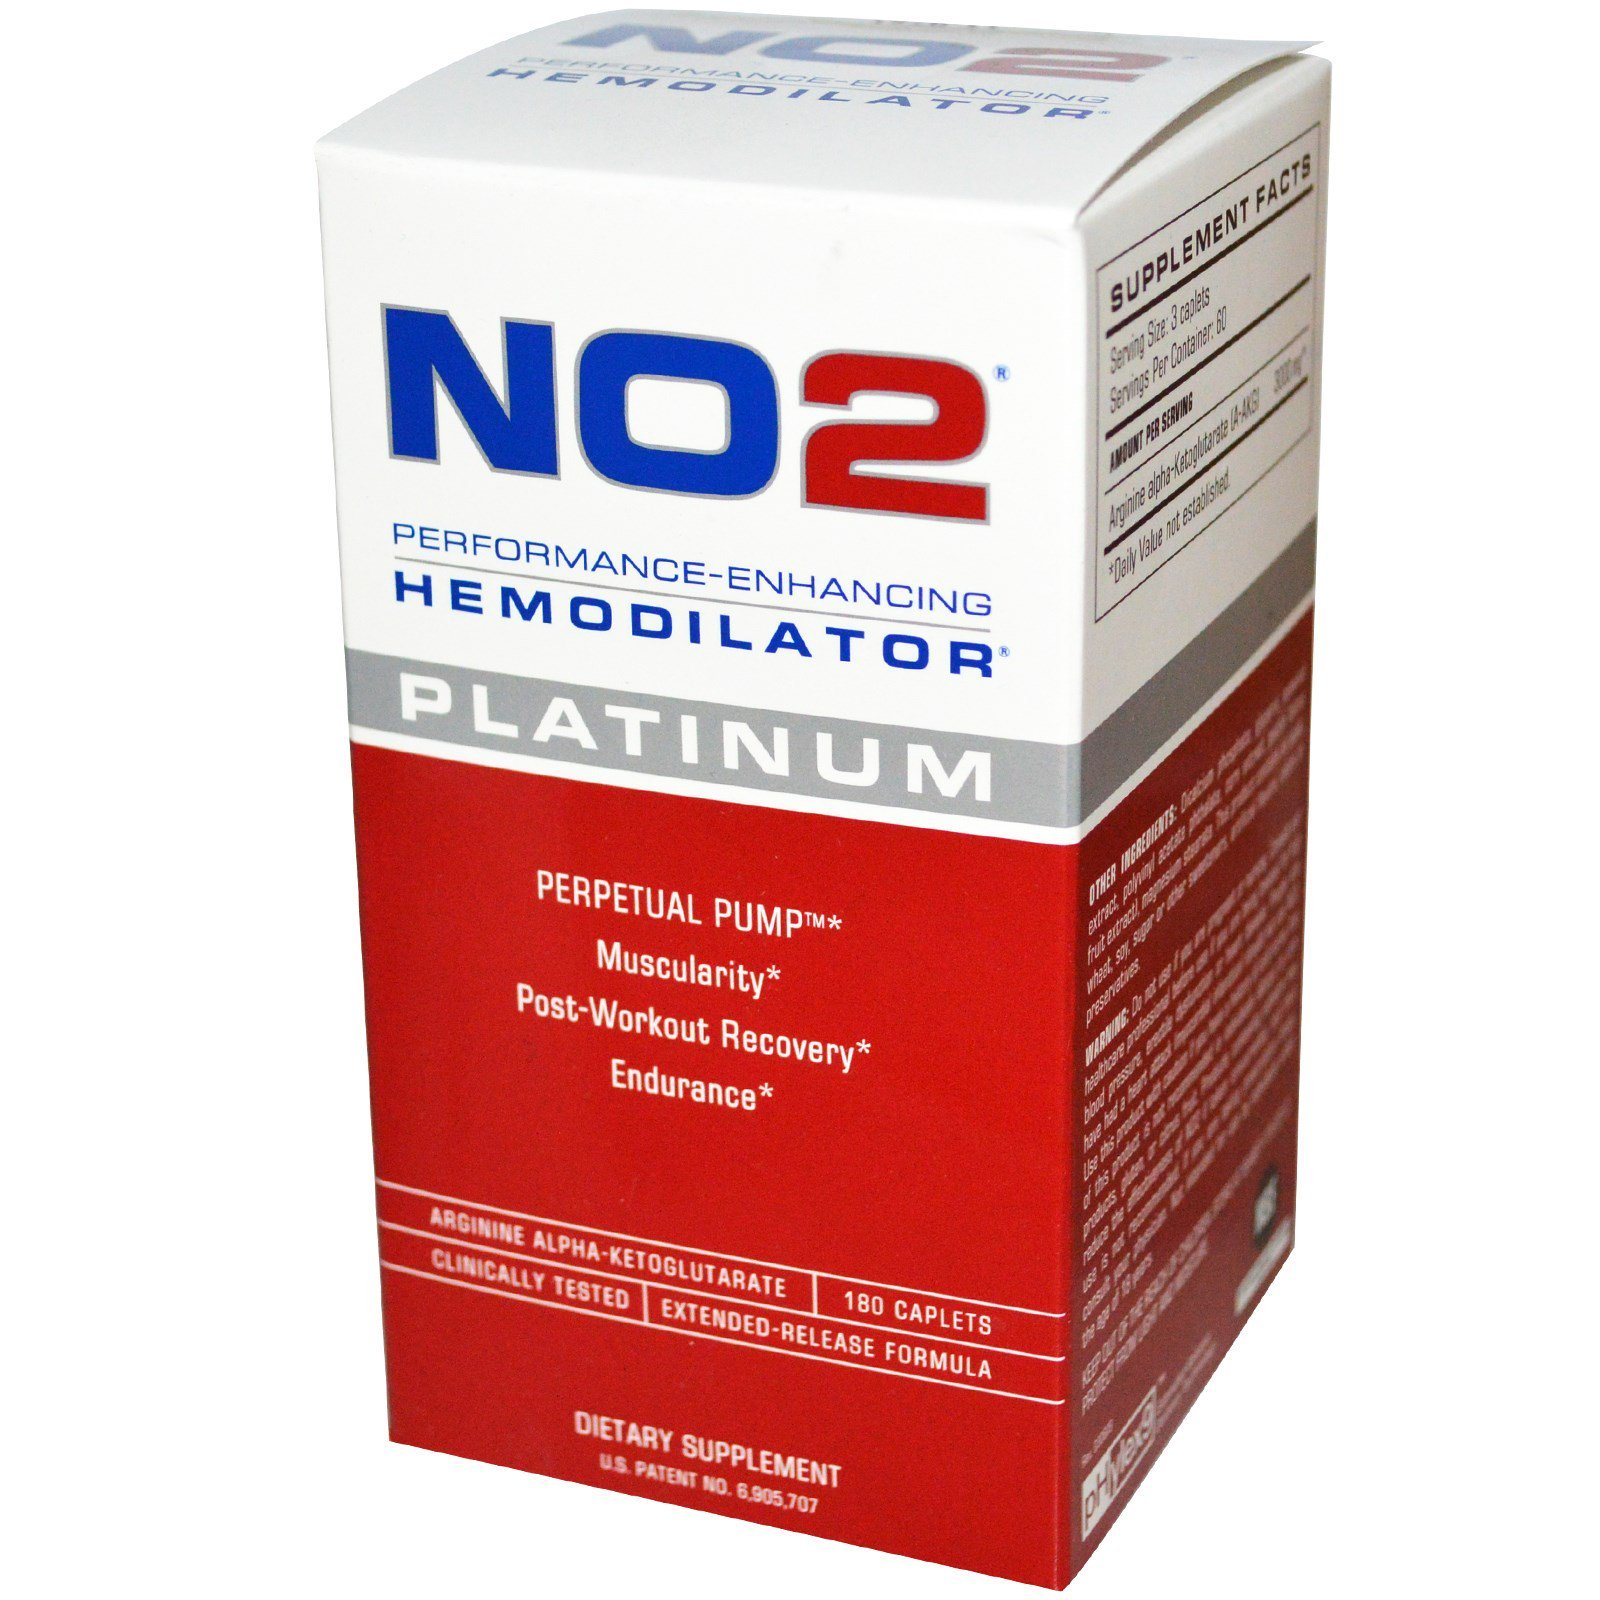 MRI NO2 Performance Enhancing Hemodilator Platinum 180 Caplets Discontinued Item